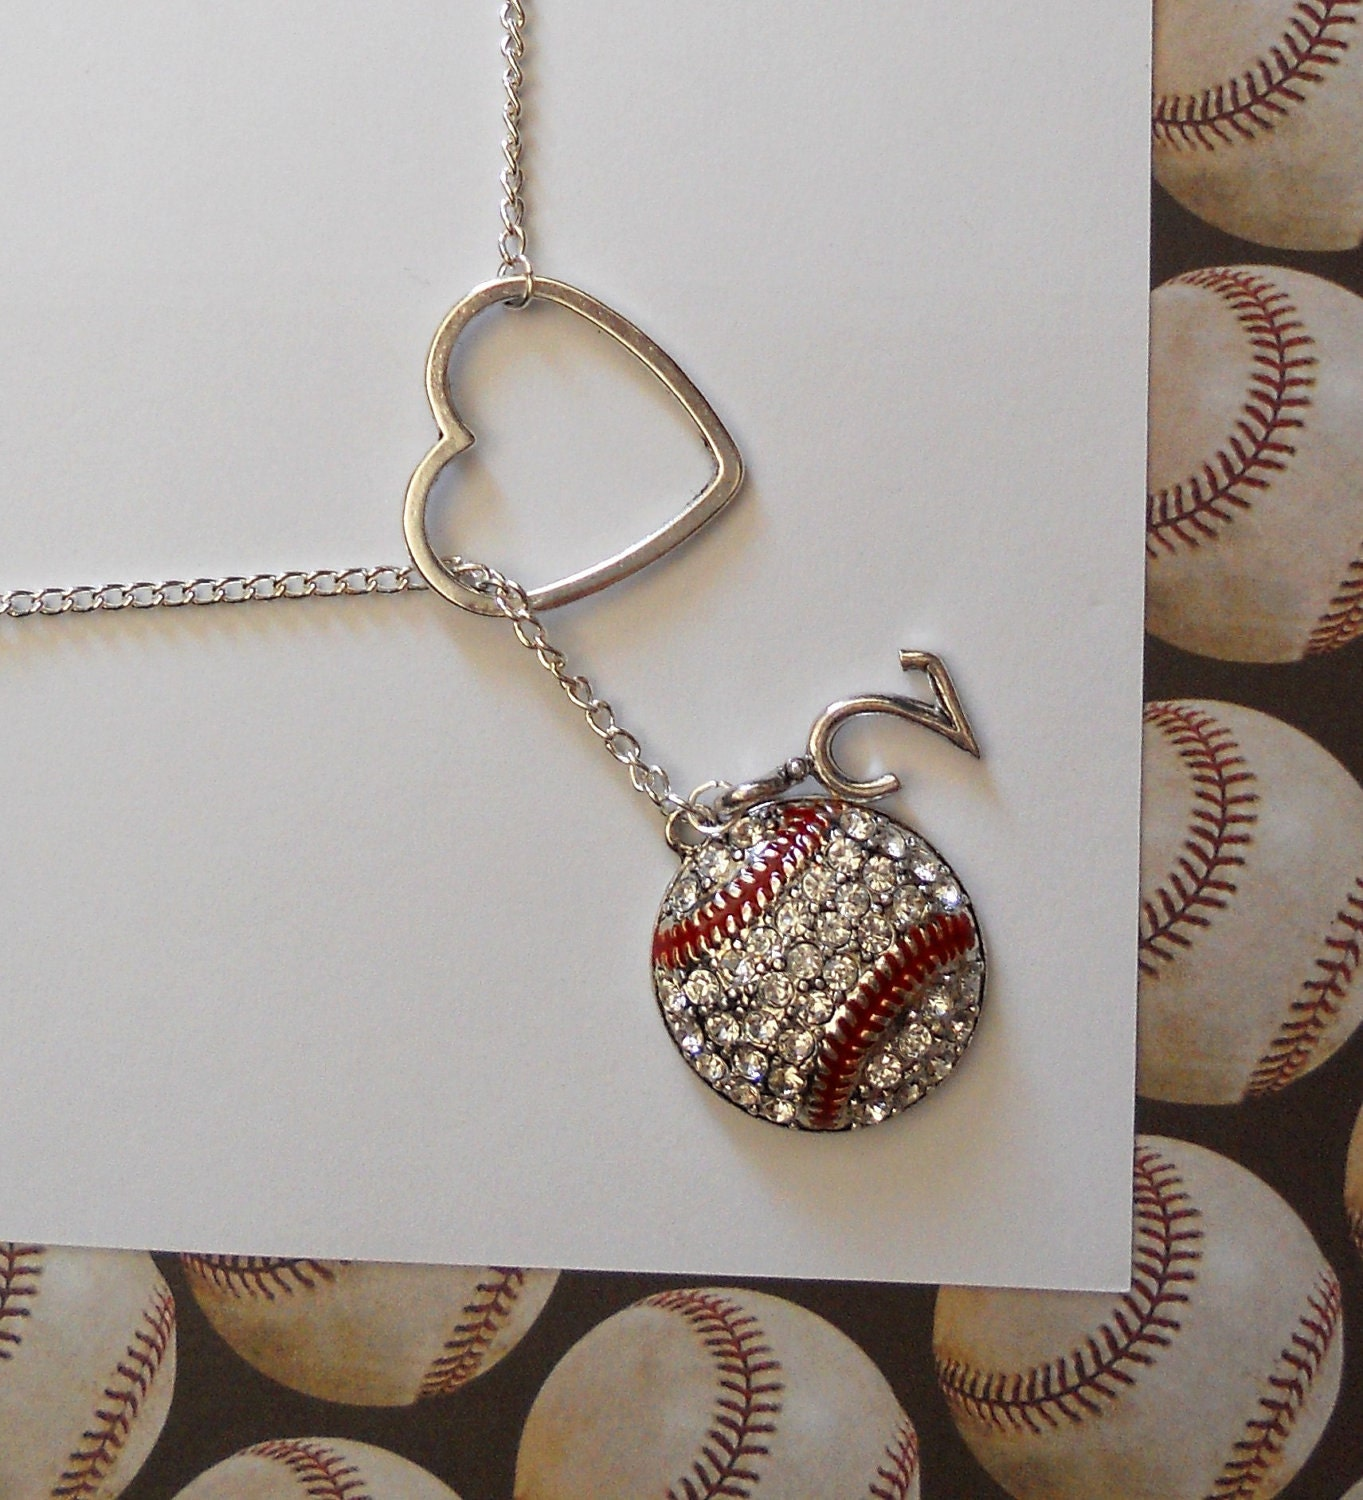 Baseball Lariat Necklace with Rhinestones, Heart and Number, handmade jewelry, pendant - MelissaMarieRussell